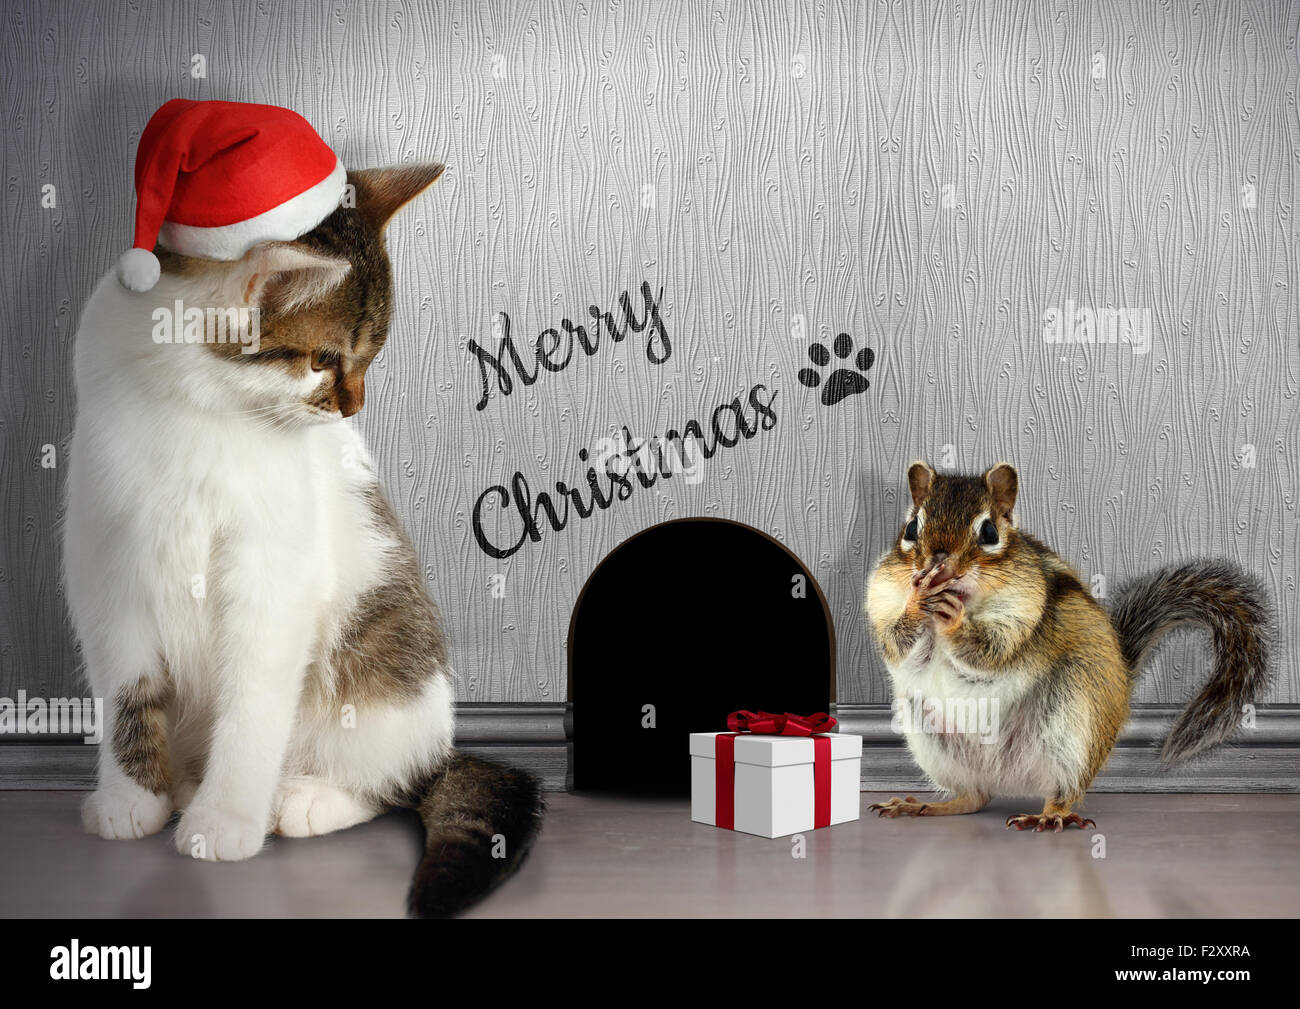 Weihnachten Funny.Christmas Congratulate Concept Funny Cat Dressed Santa Hat And Gift